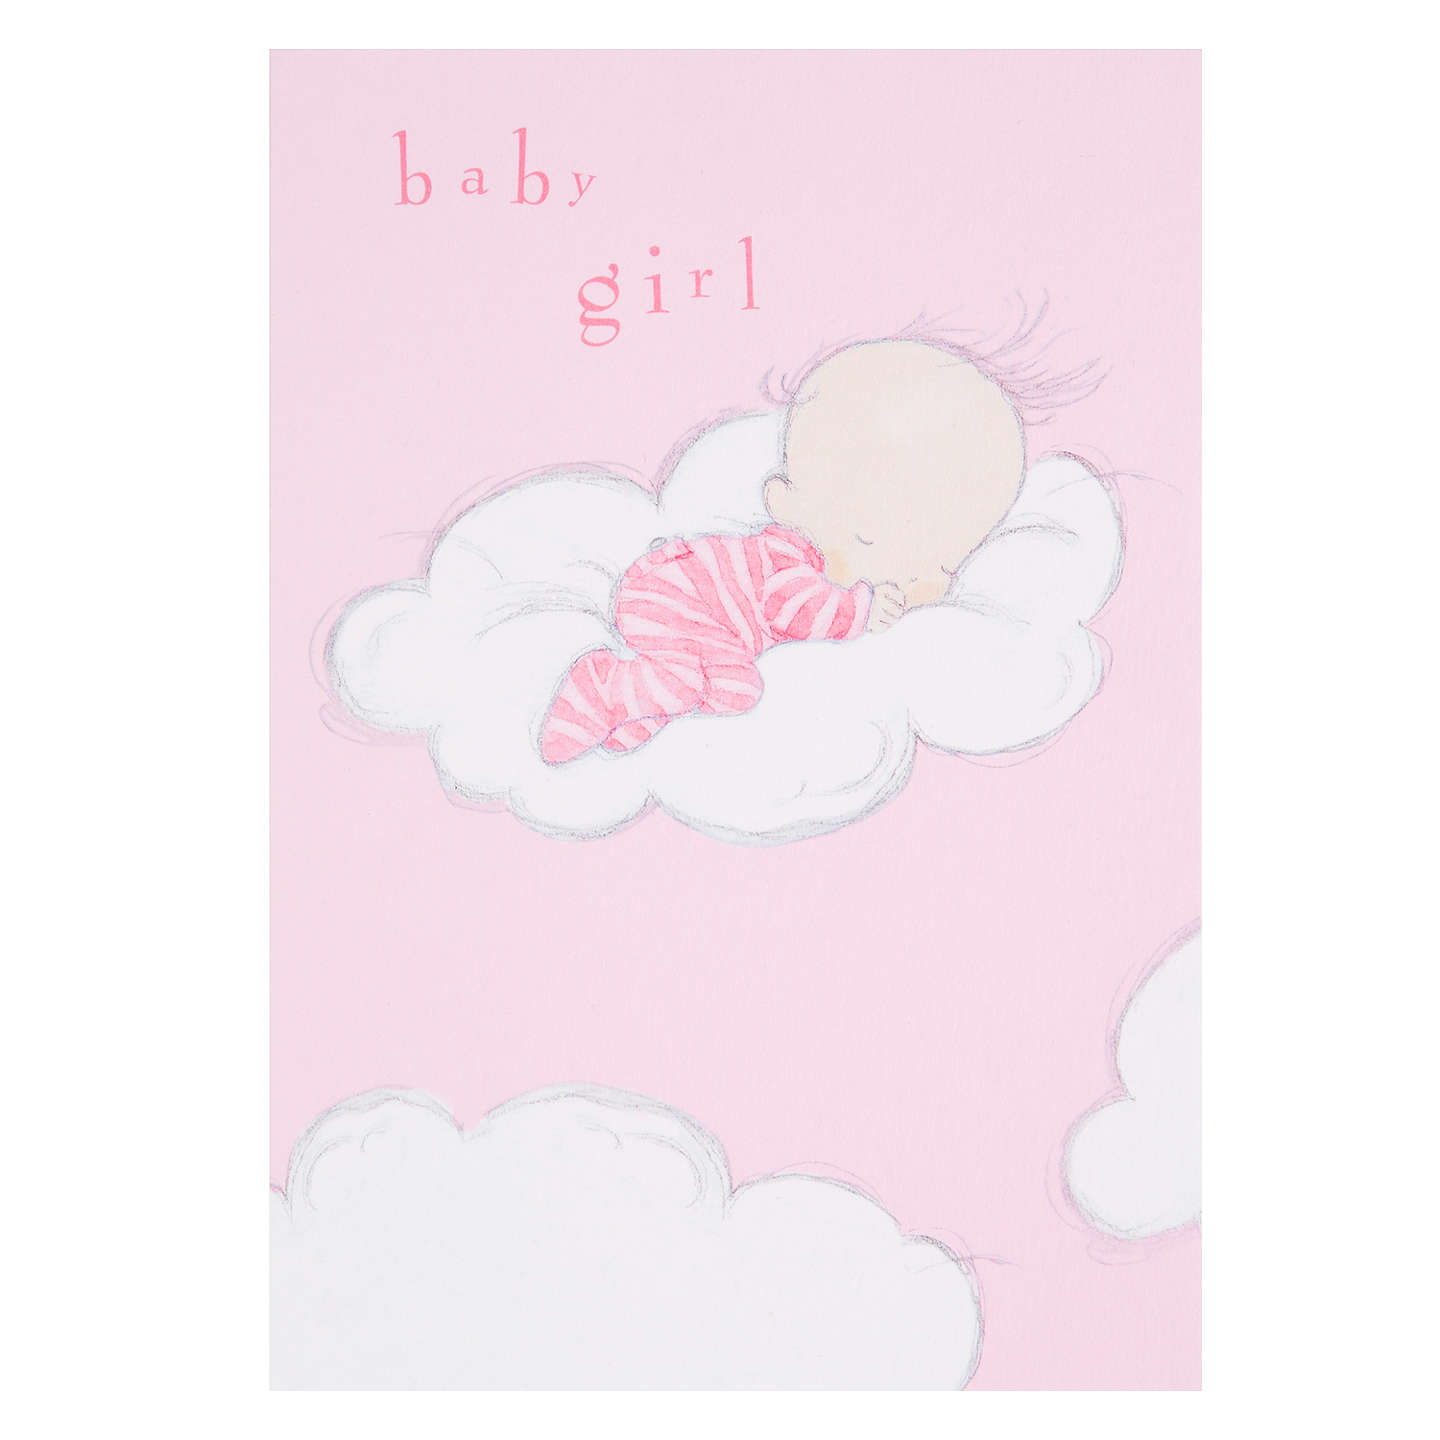 Woodmansterne sleeping on fluffy cloud new baby girl greeting card buywoodmansterne sleeping on fluffy cloud new baby girl greeting card online at johnlewis kristyandbryce Images